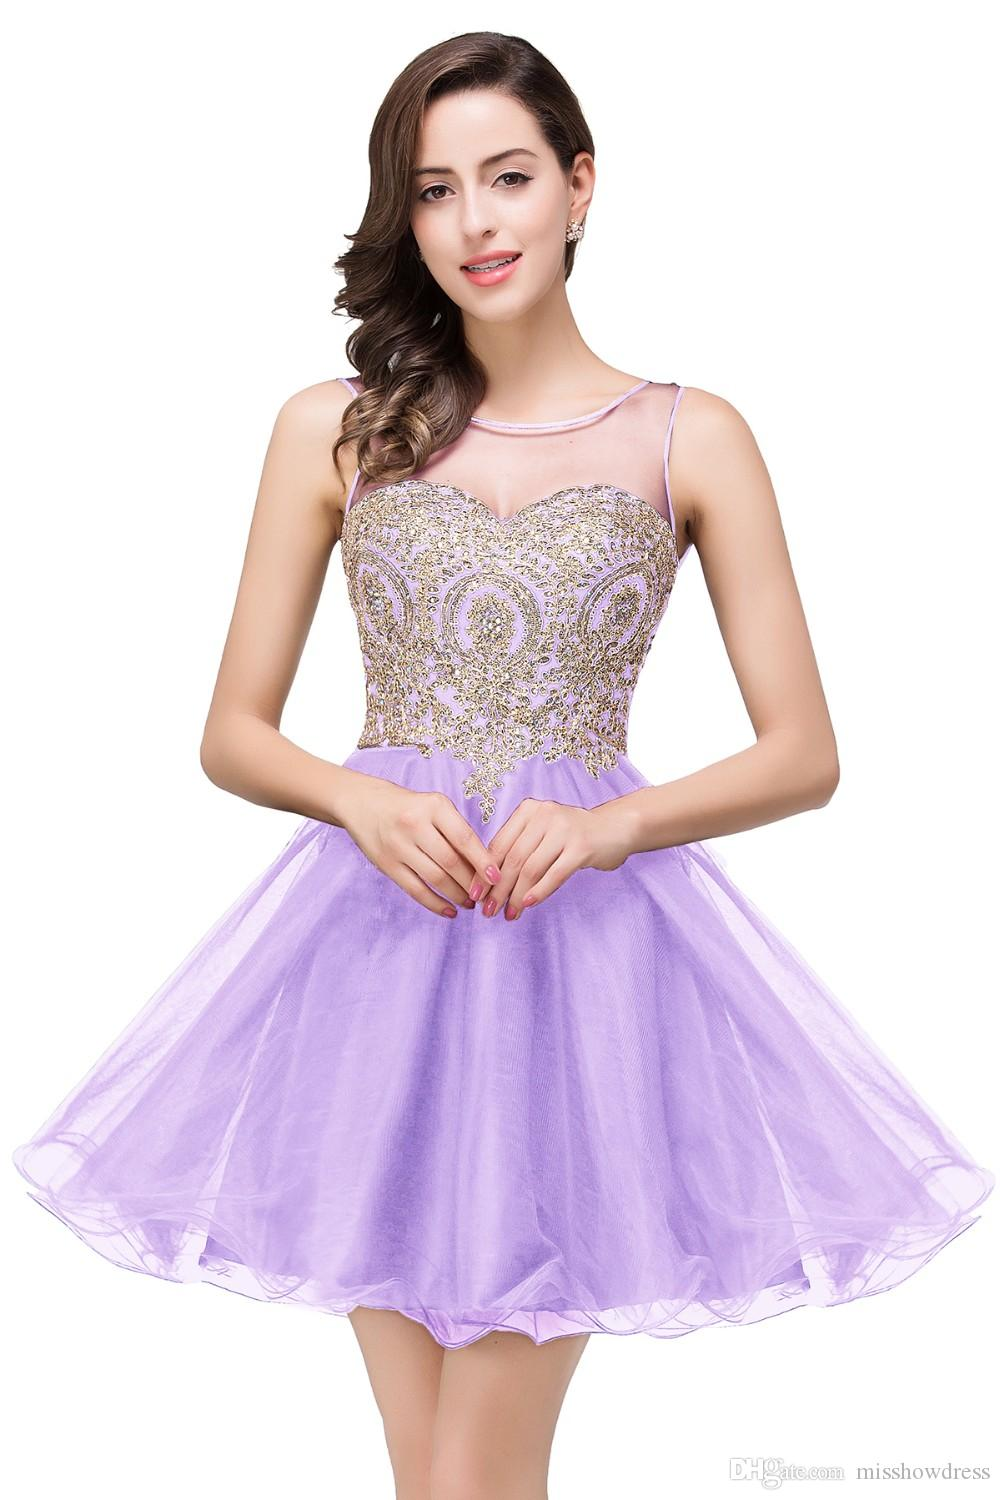 2018 Elegant Sheer Mesh Top Tulle Short A Line Homecoming Dresses Lace Applique Formal Party Cocktial Short Prom Dresses CPS362